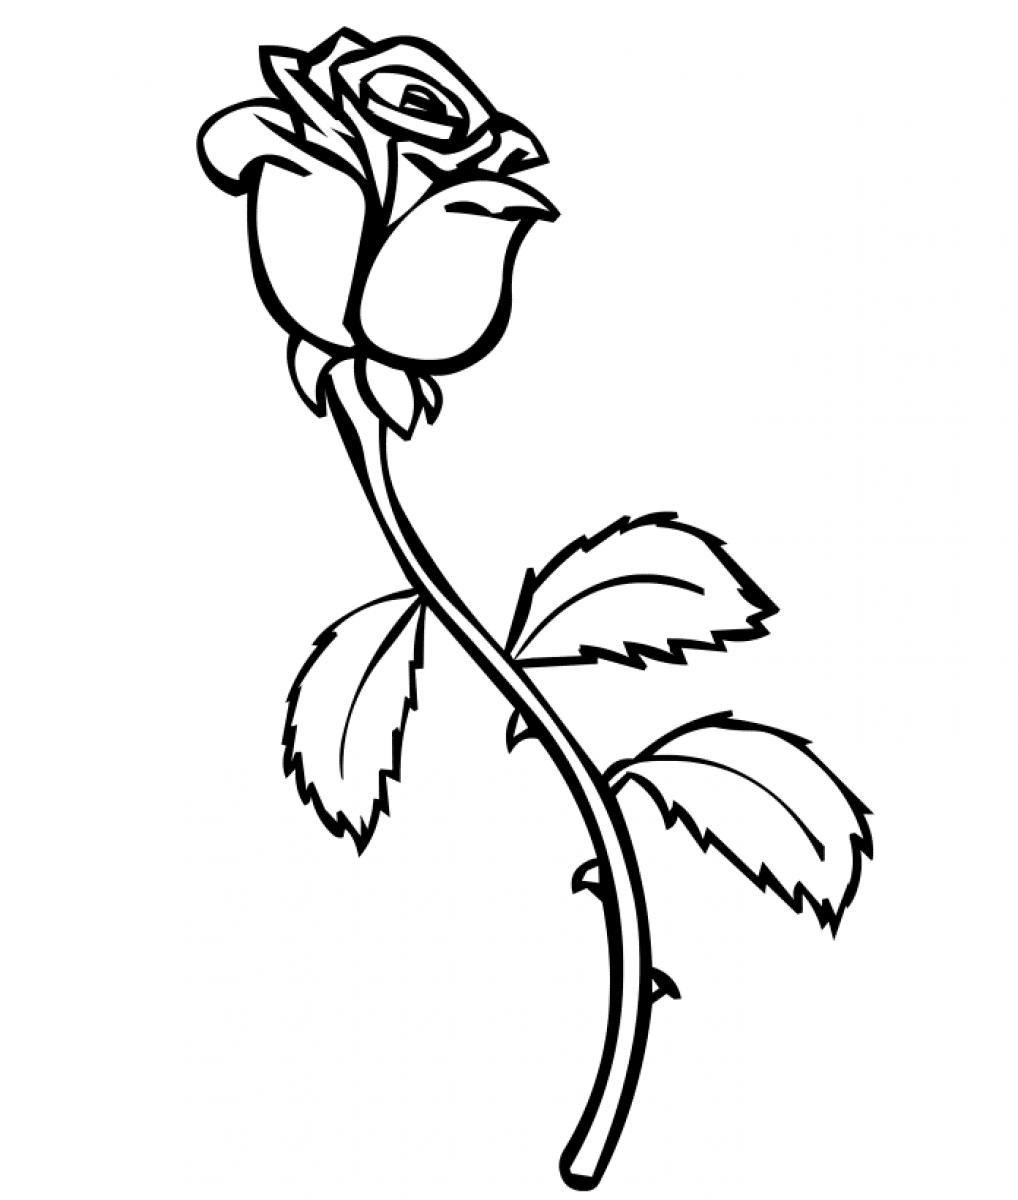 rose color sheets rose color clipart 20 free cliparts download images on rose sheets color